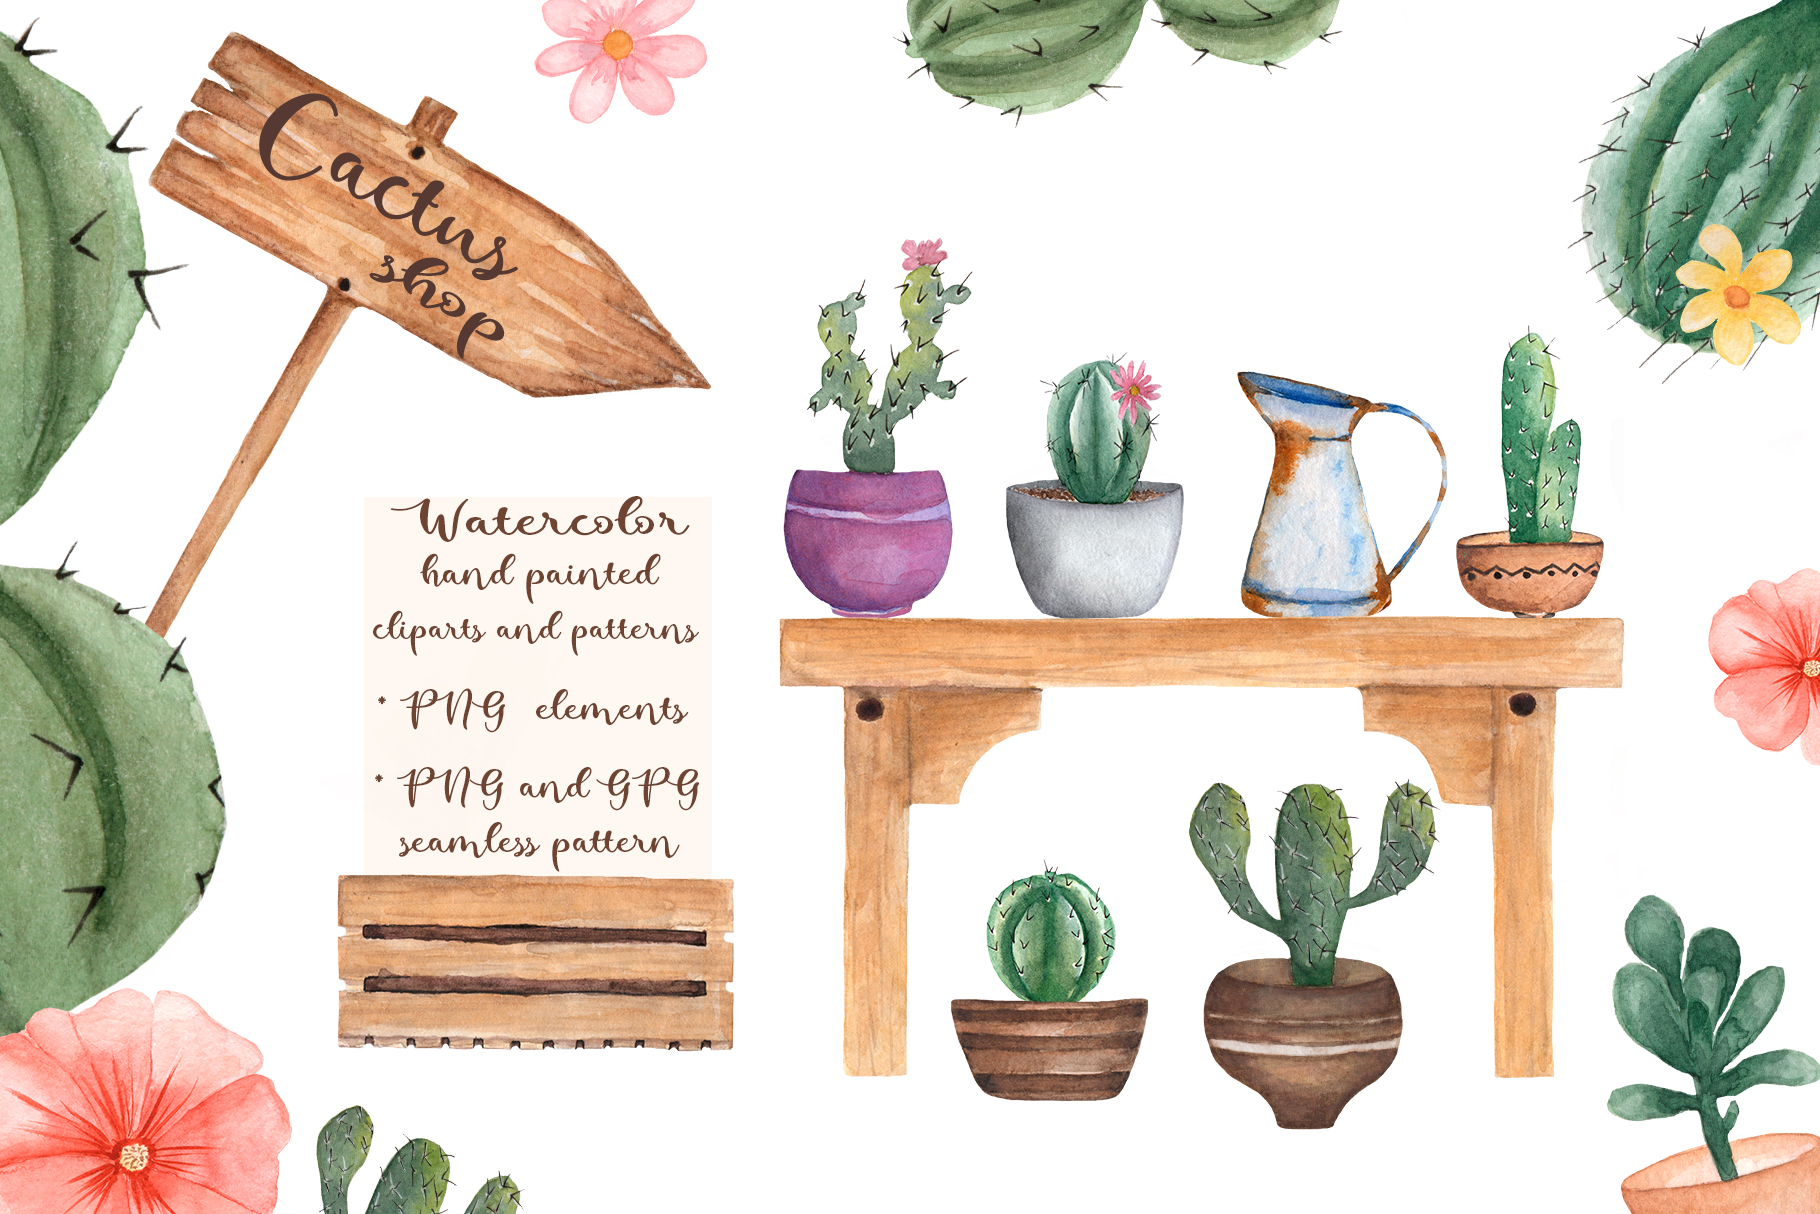 Watercolor Cactus Shop example image 1